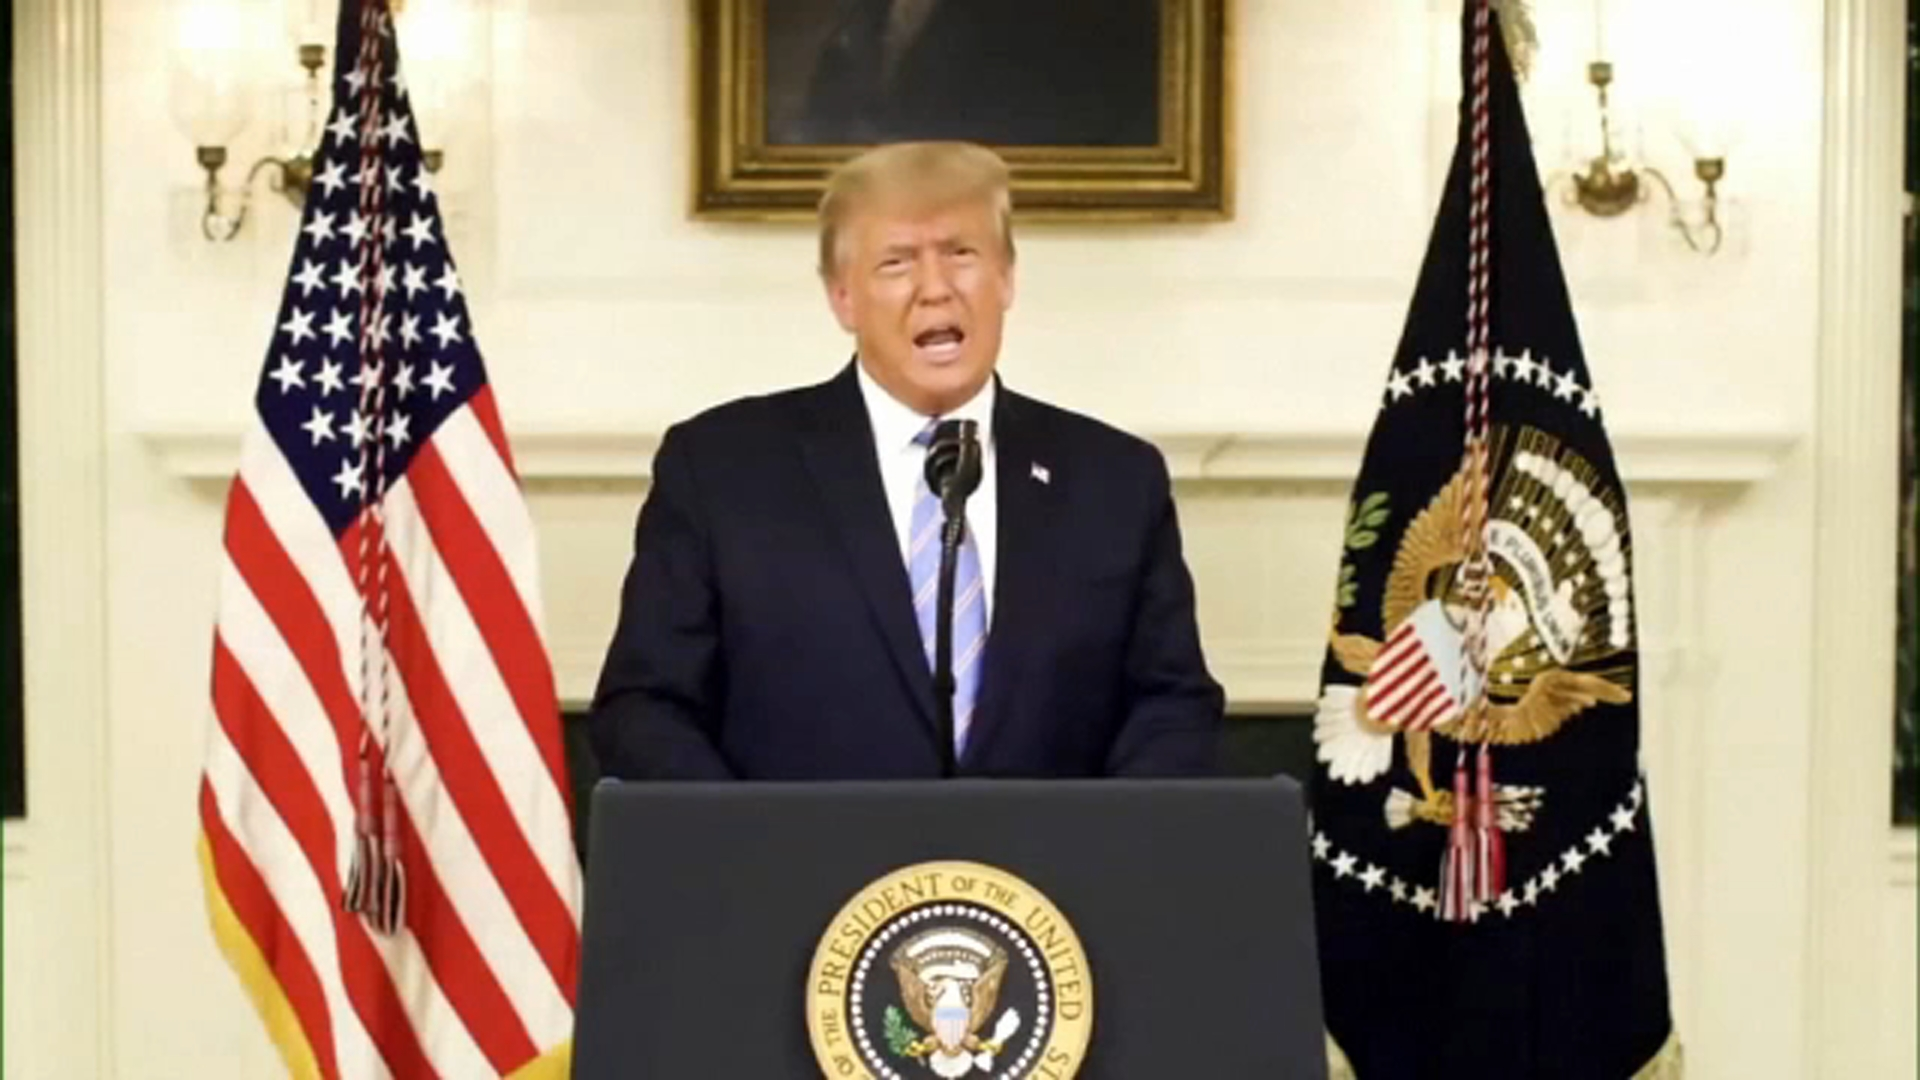 President Trump says his term is ending, transition with Joe Biden will be  orderly following riot on Capitol in Washington, D.C. - ABC7 Los Angeles